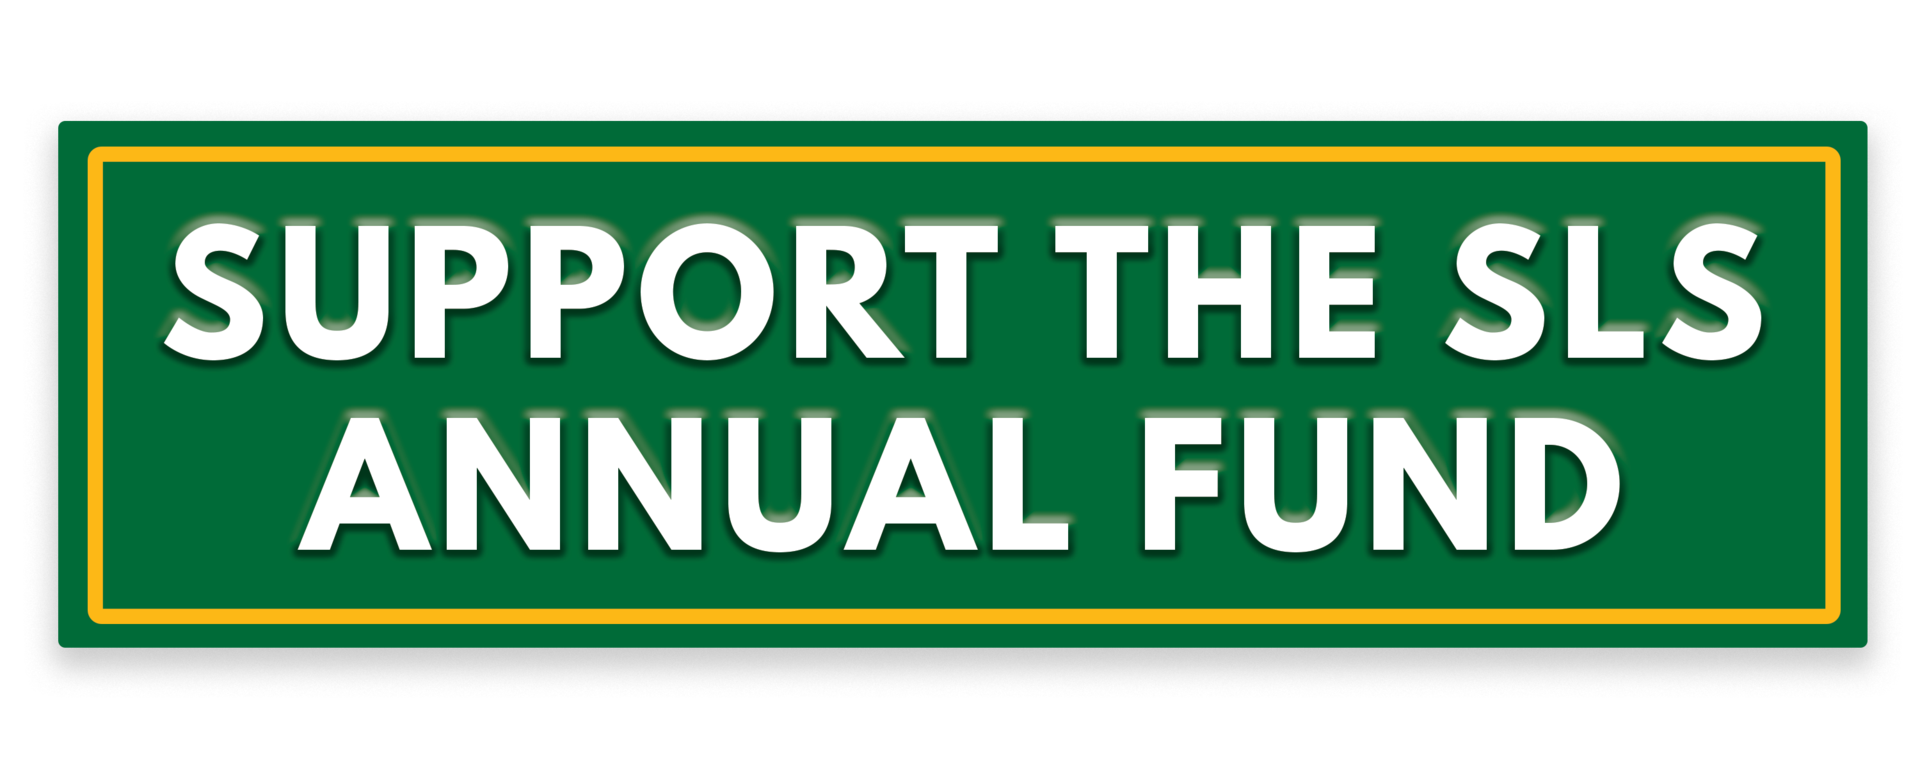 Support the SLS Annual Fund